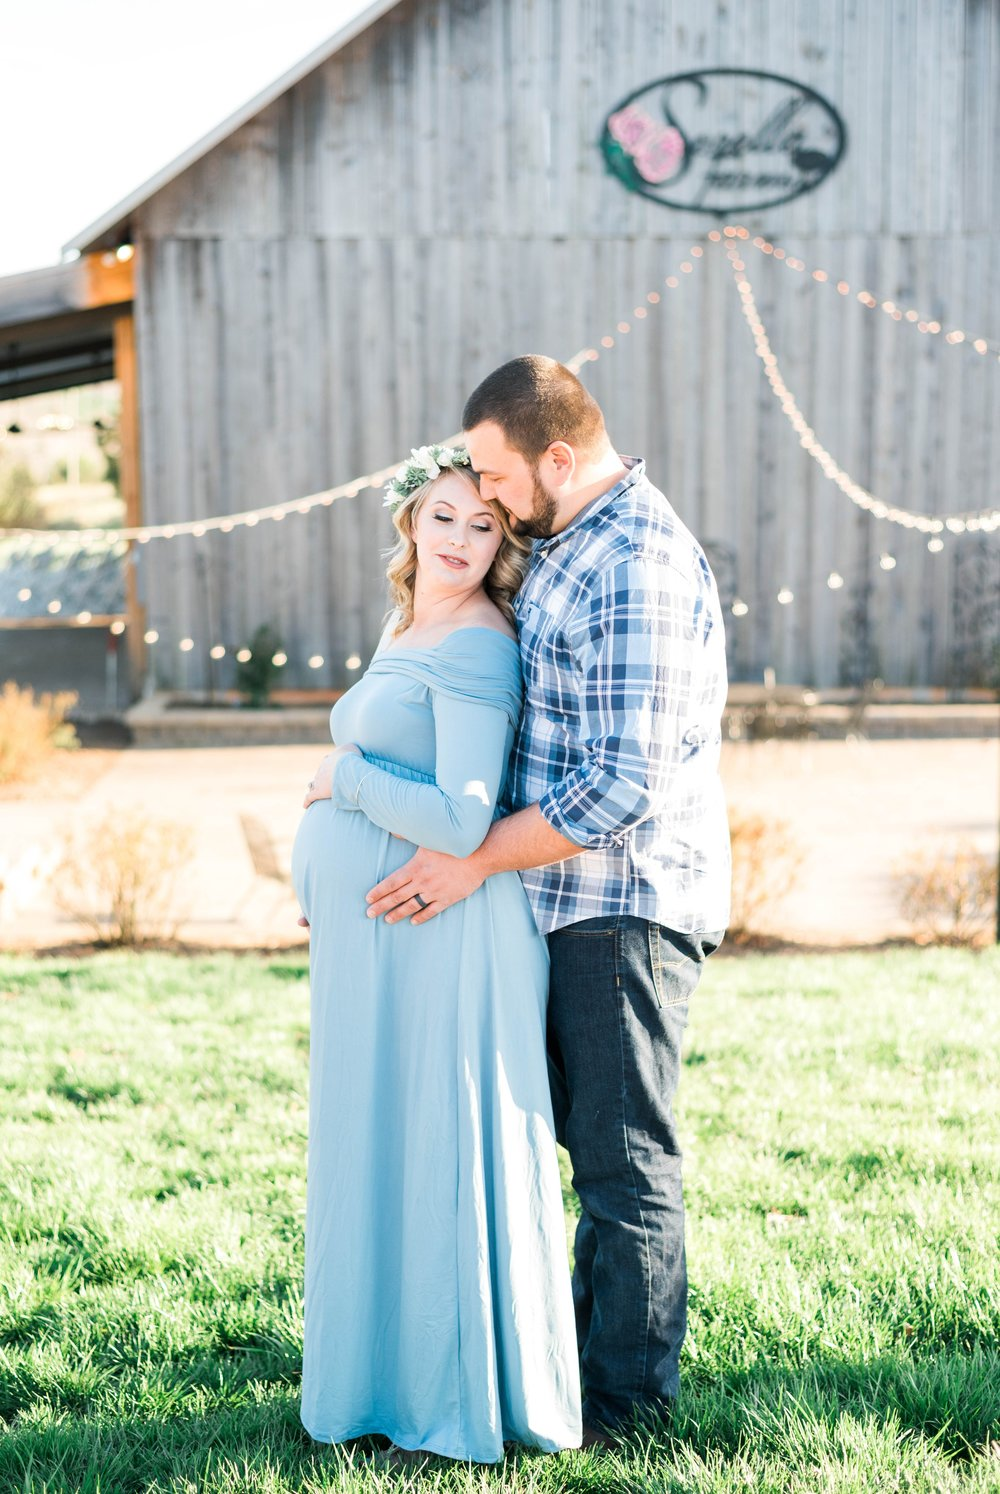 SorellaFarms_Jessica+Dylan_MaternitySession_Virginiaweddingphotographer 15.jpg